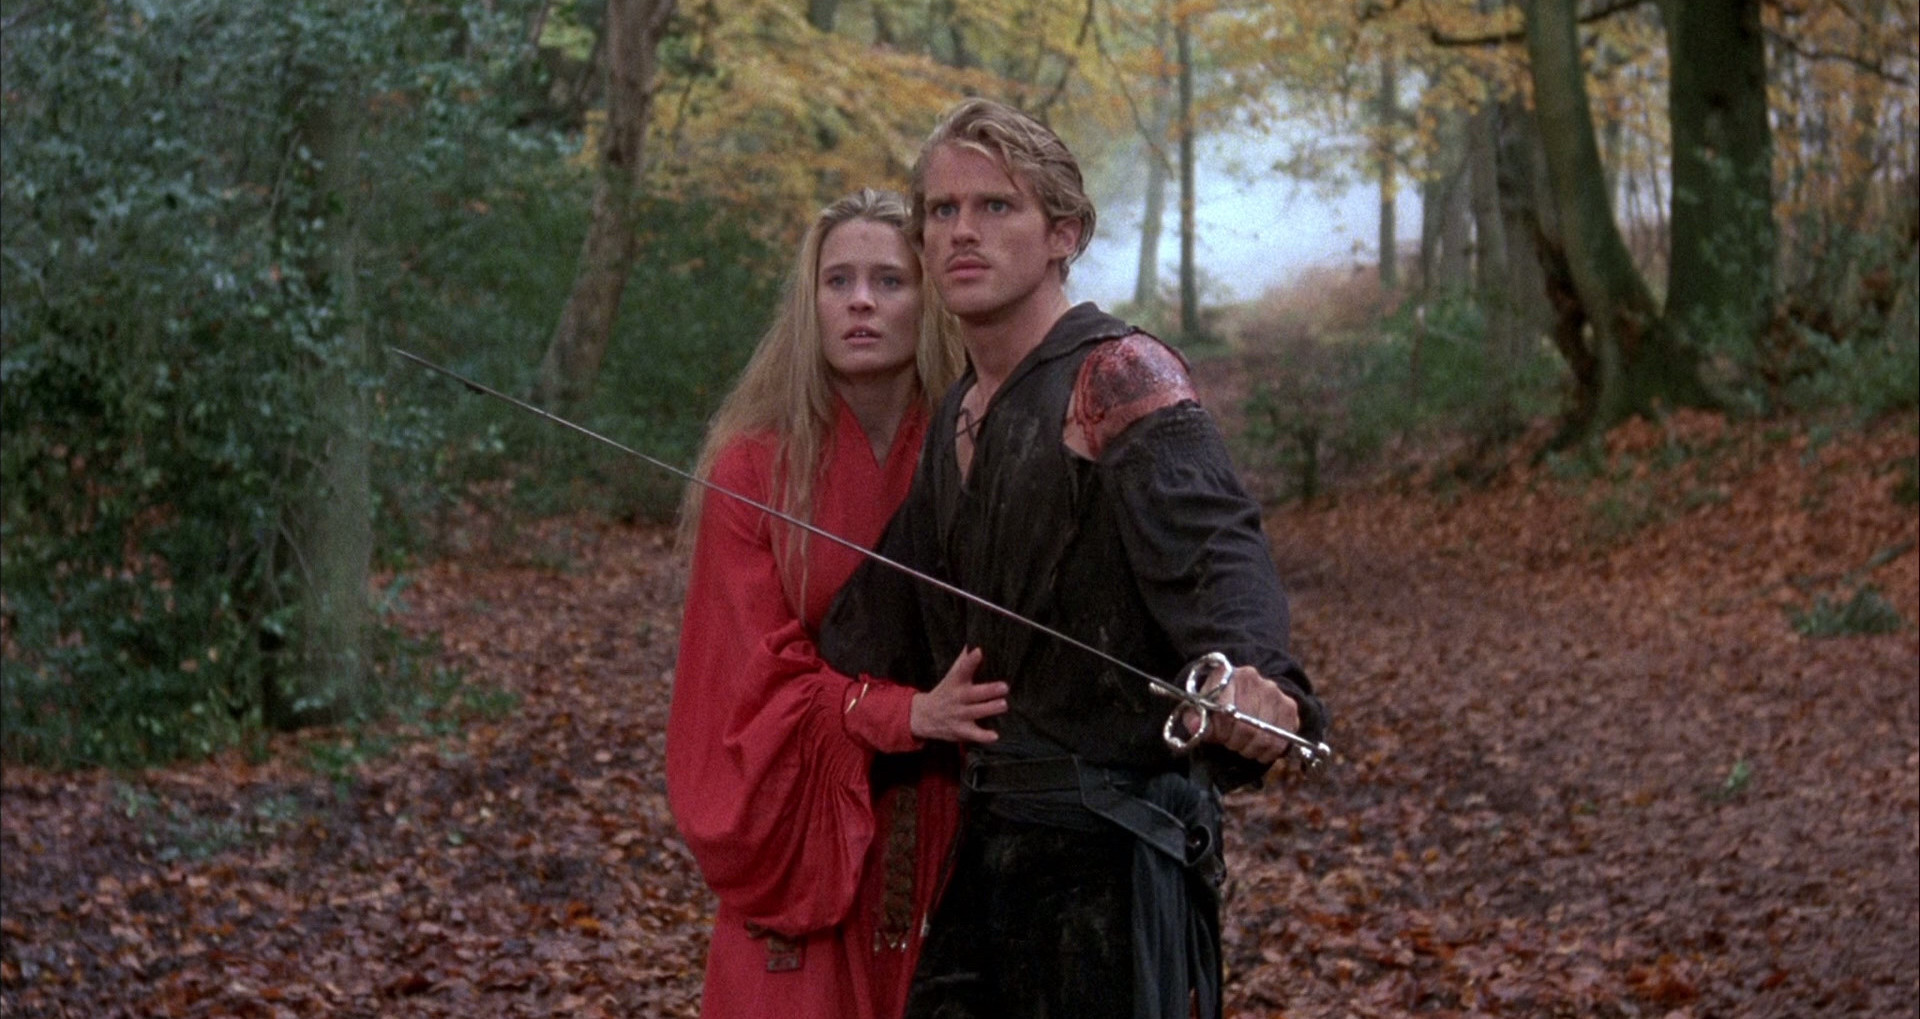 Cary Elwes has some *thoughts* about those Princess Bride remake rumors